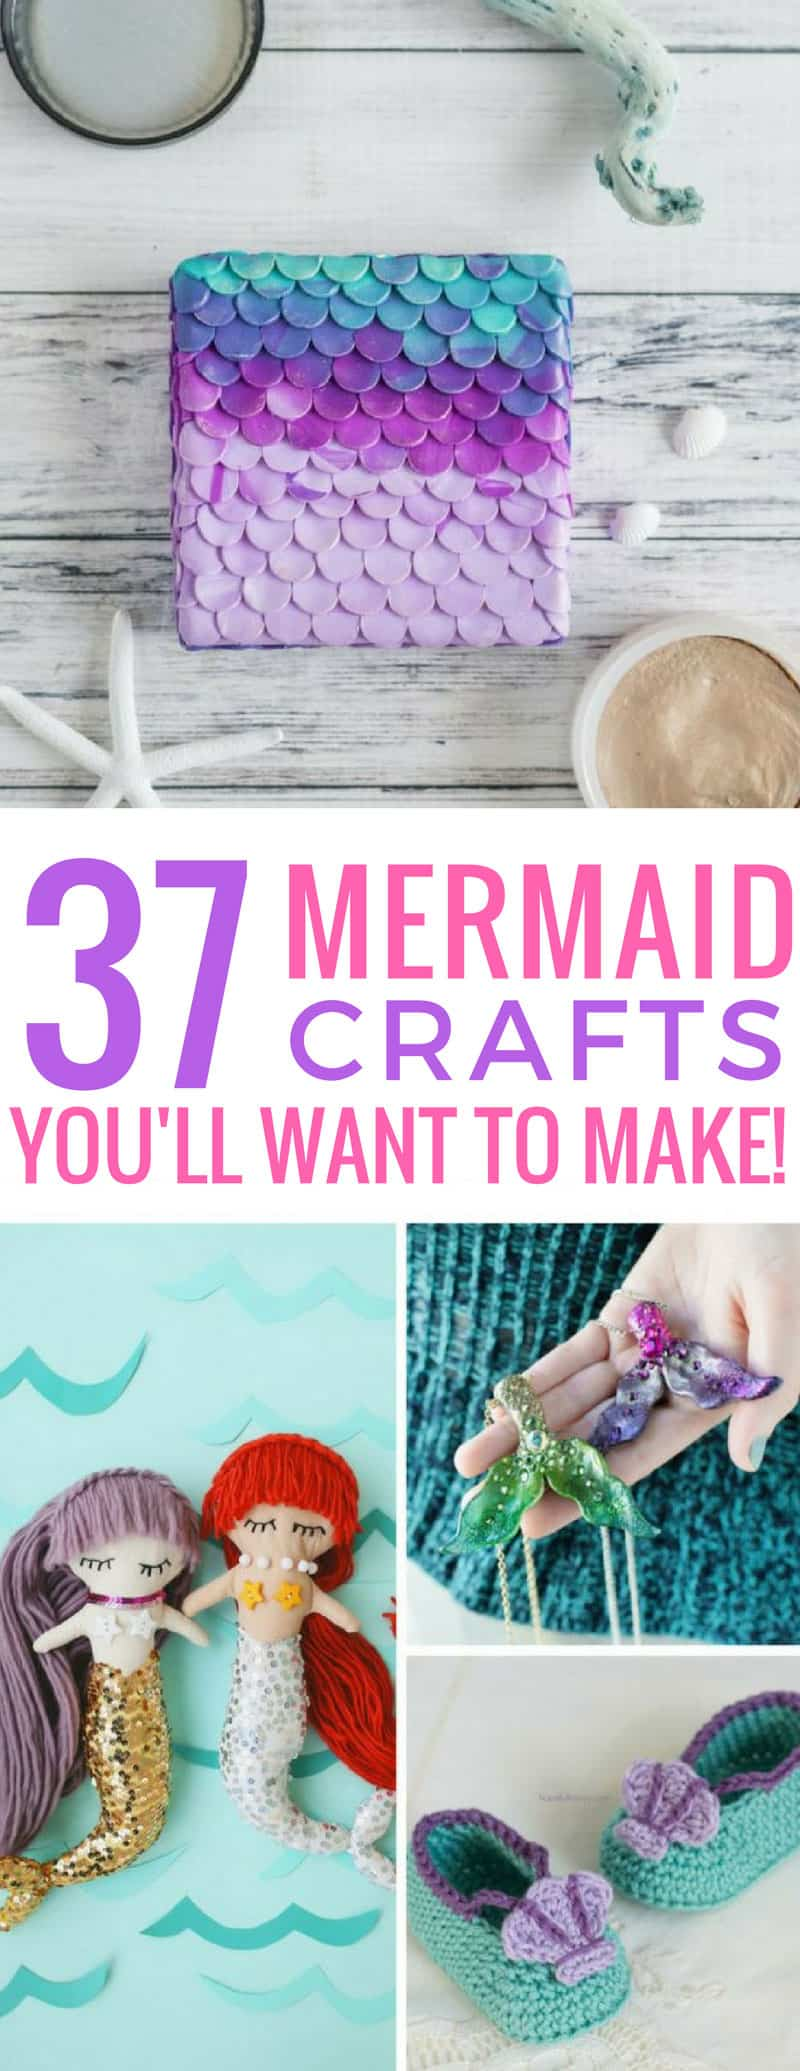 So many gorgeous mermaid crafts for us to make this weekend! Thanks for sharing!